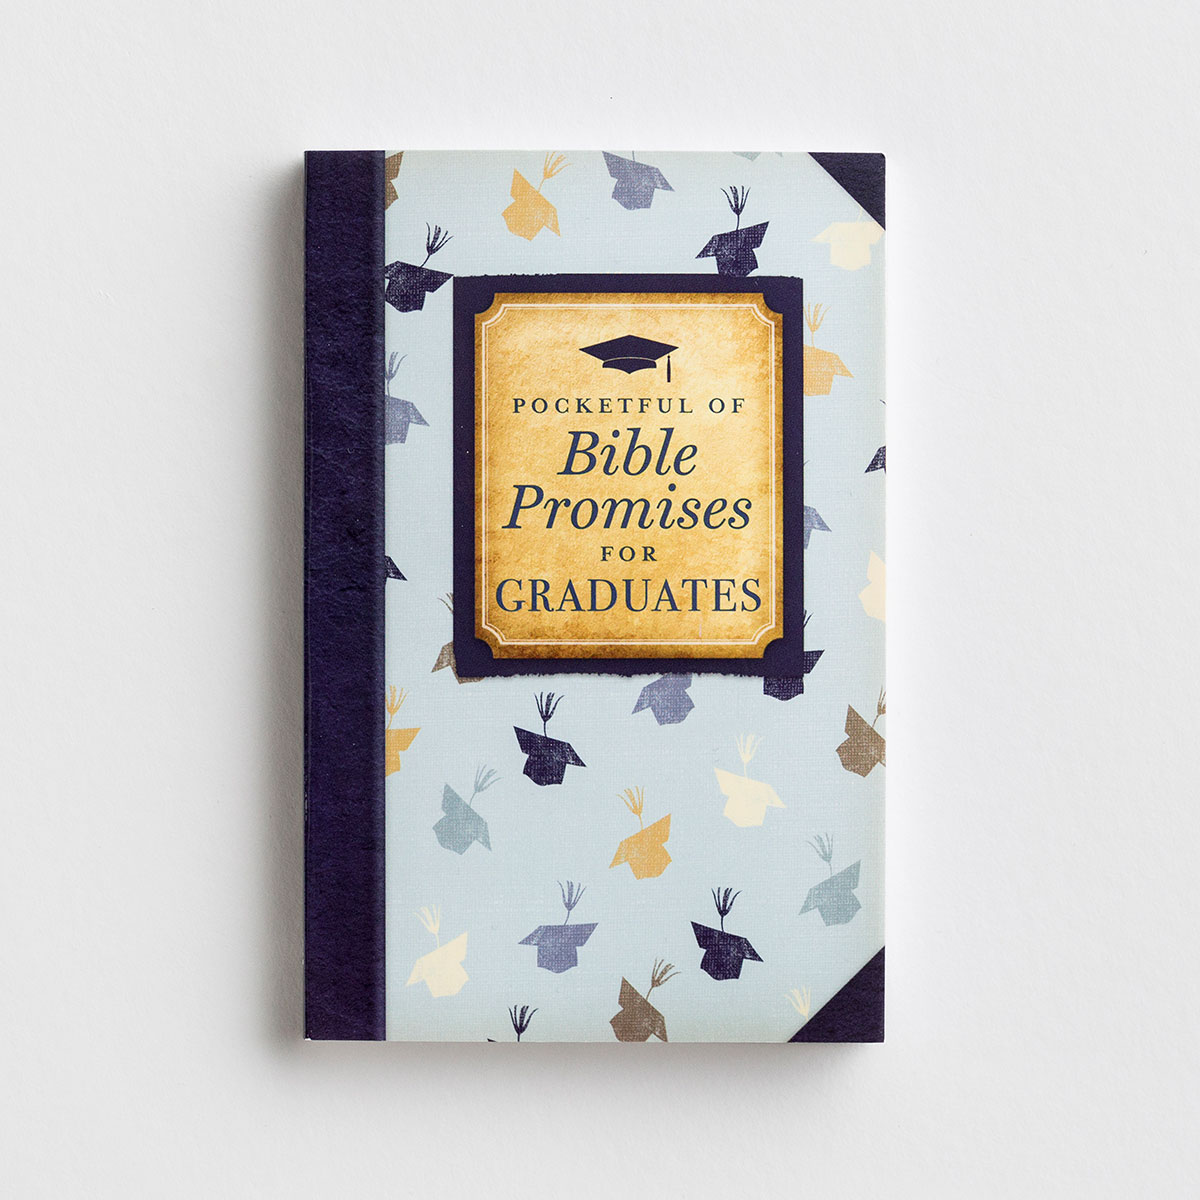 Pocketful of Bible Promises for Graduates - Gift Book